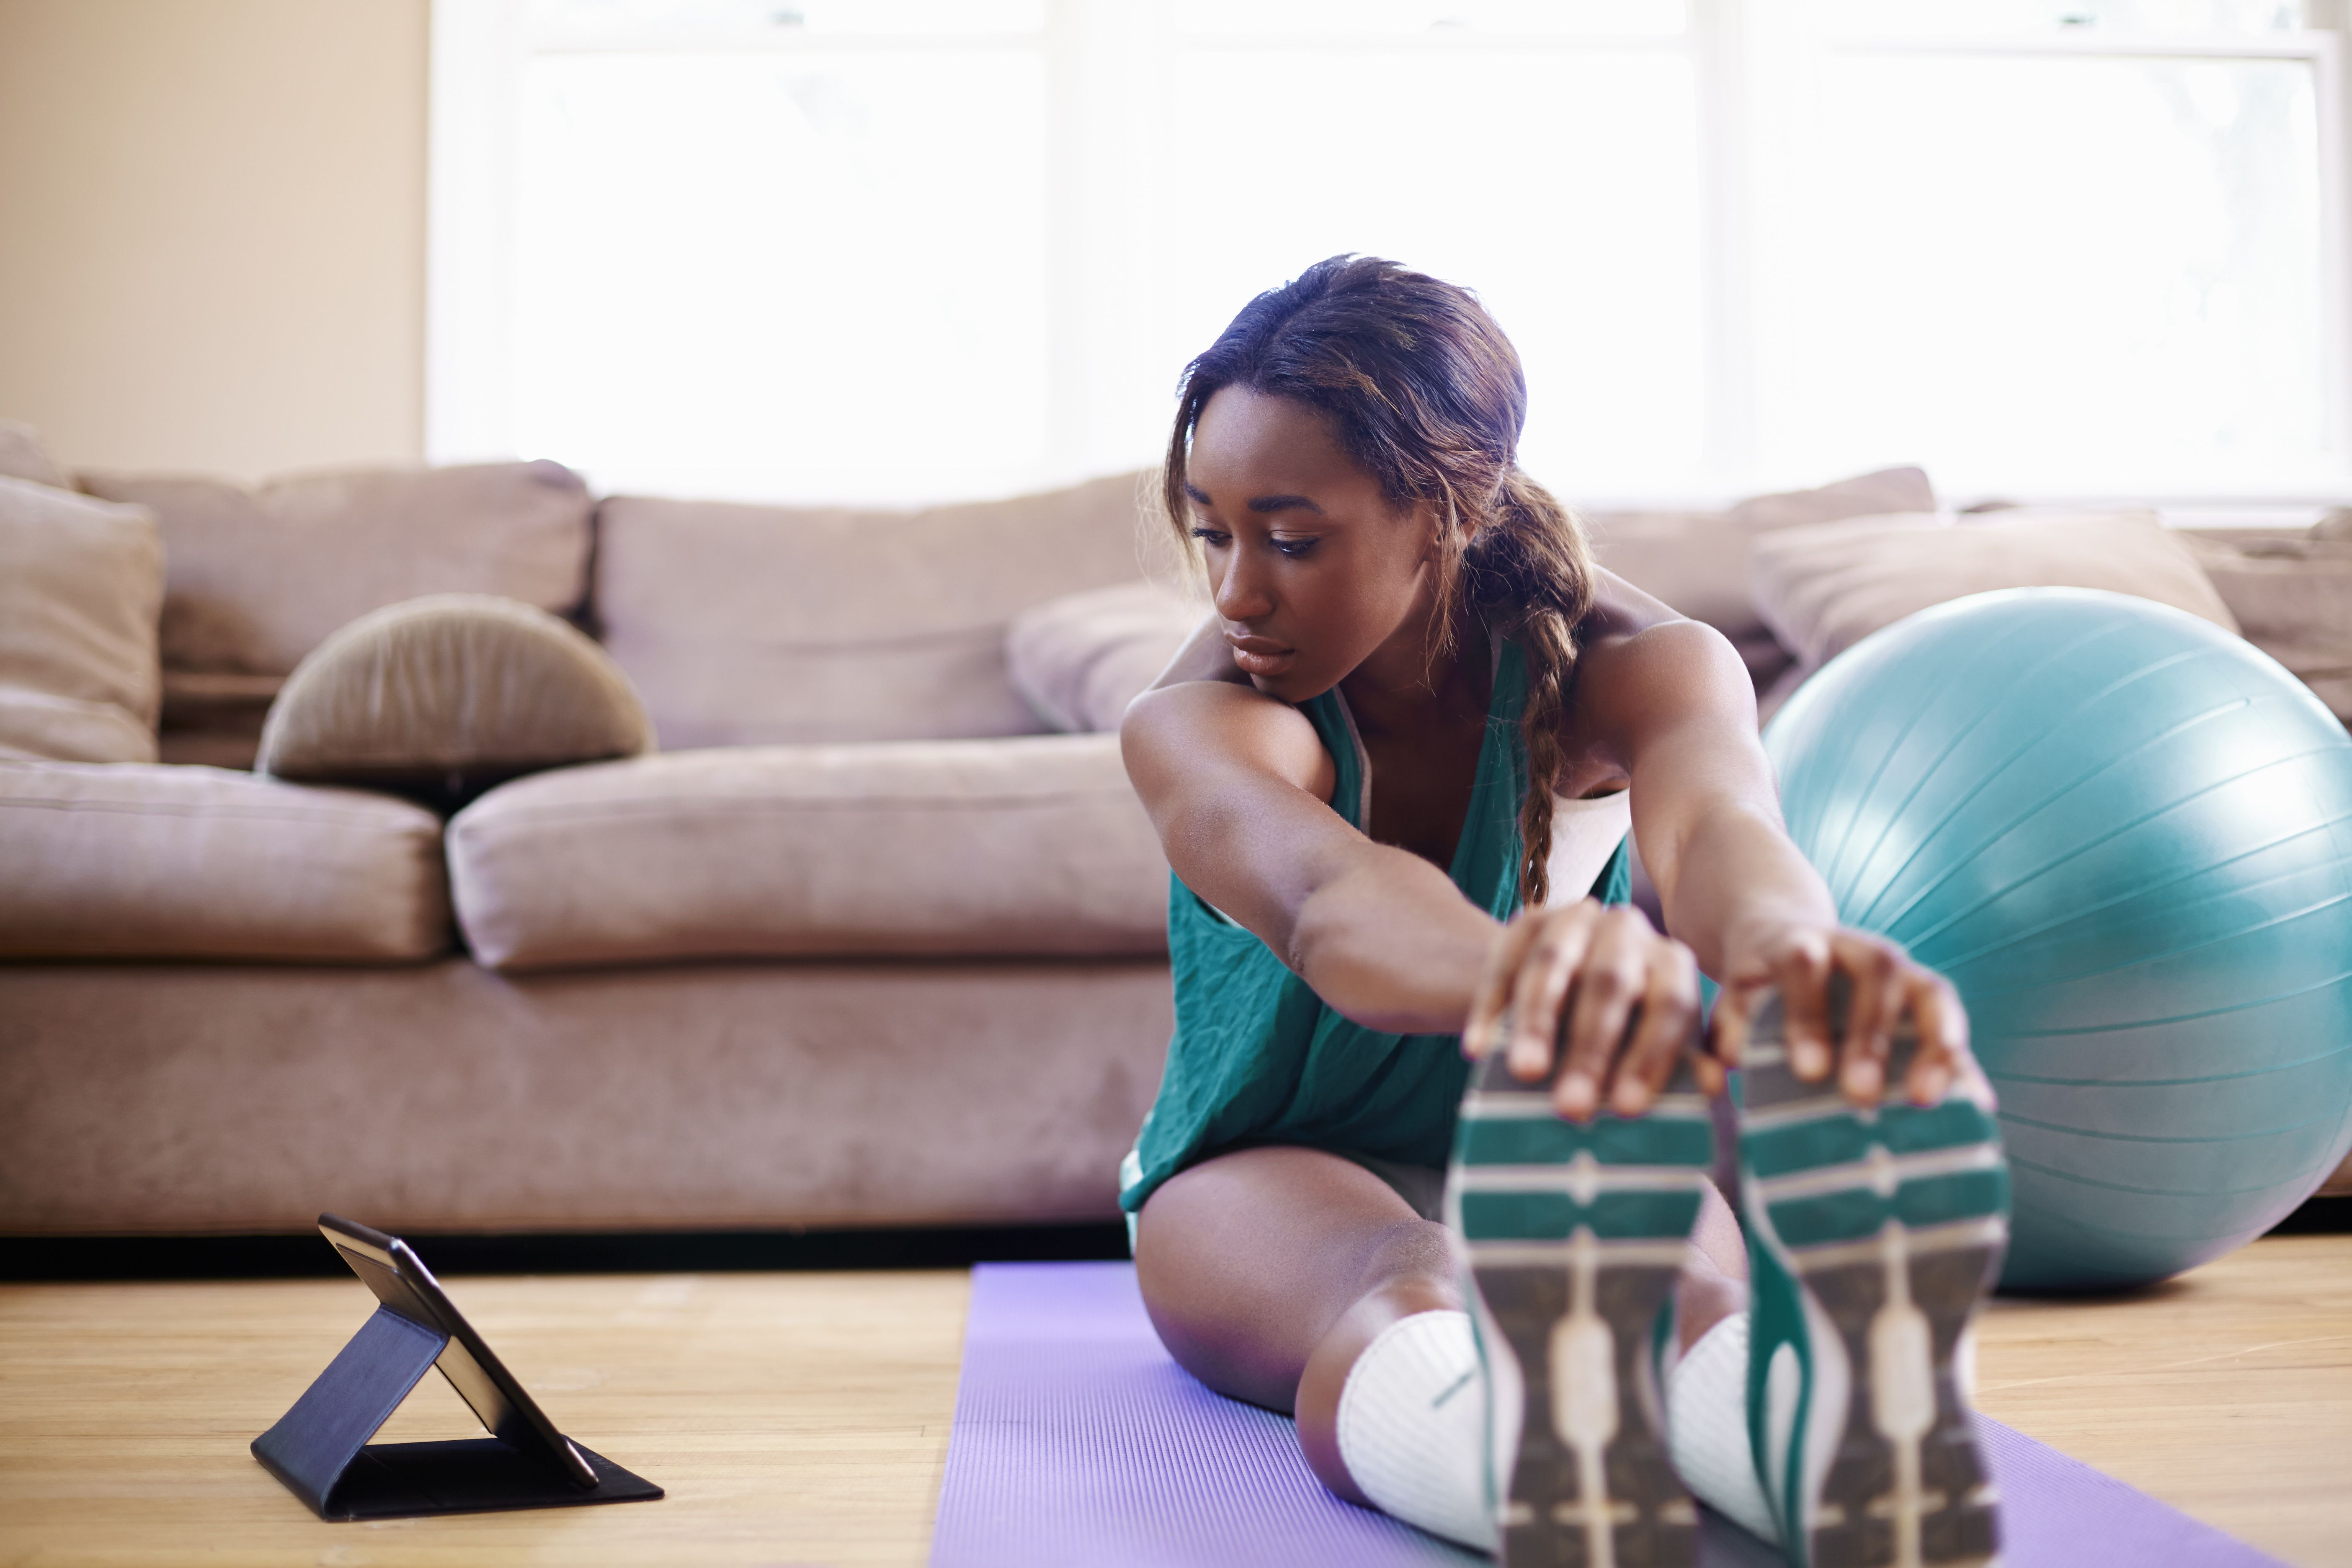 Free Workout Streaming Services You Can Use at Home